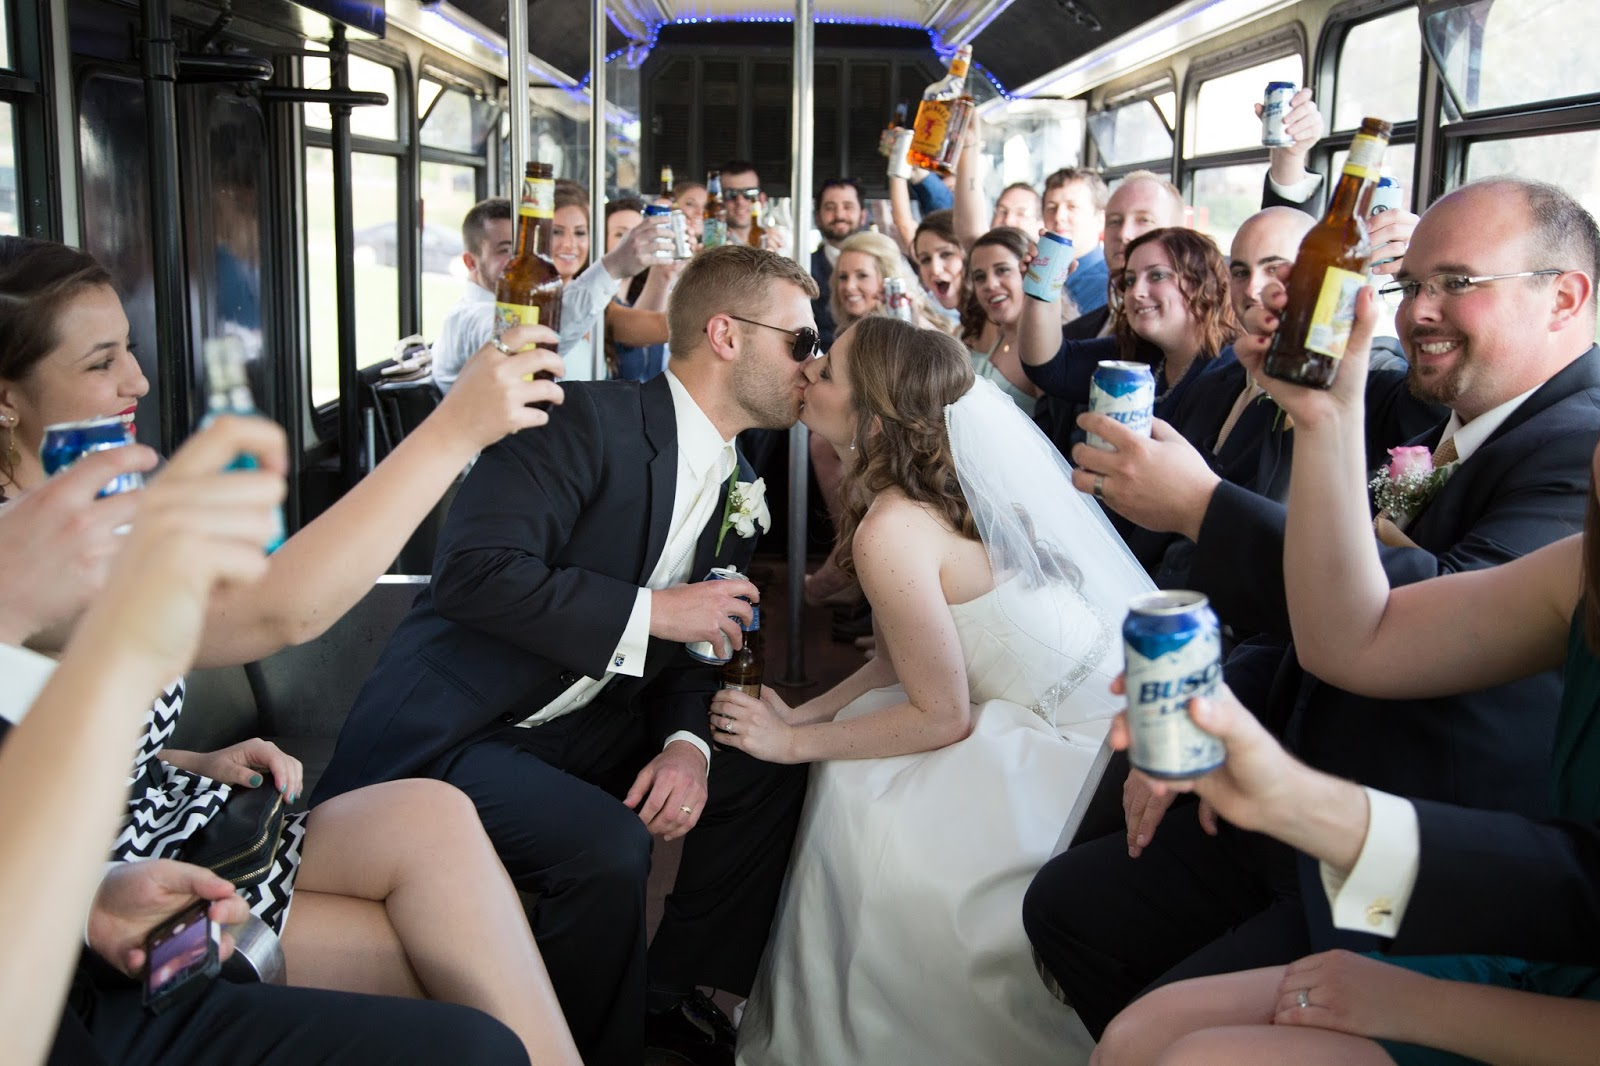 party bus pictures on your wedding day | a memory of us